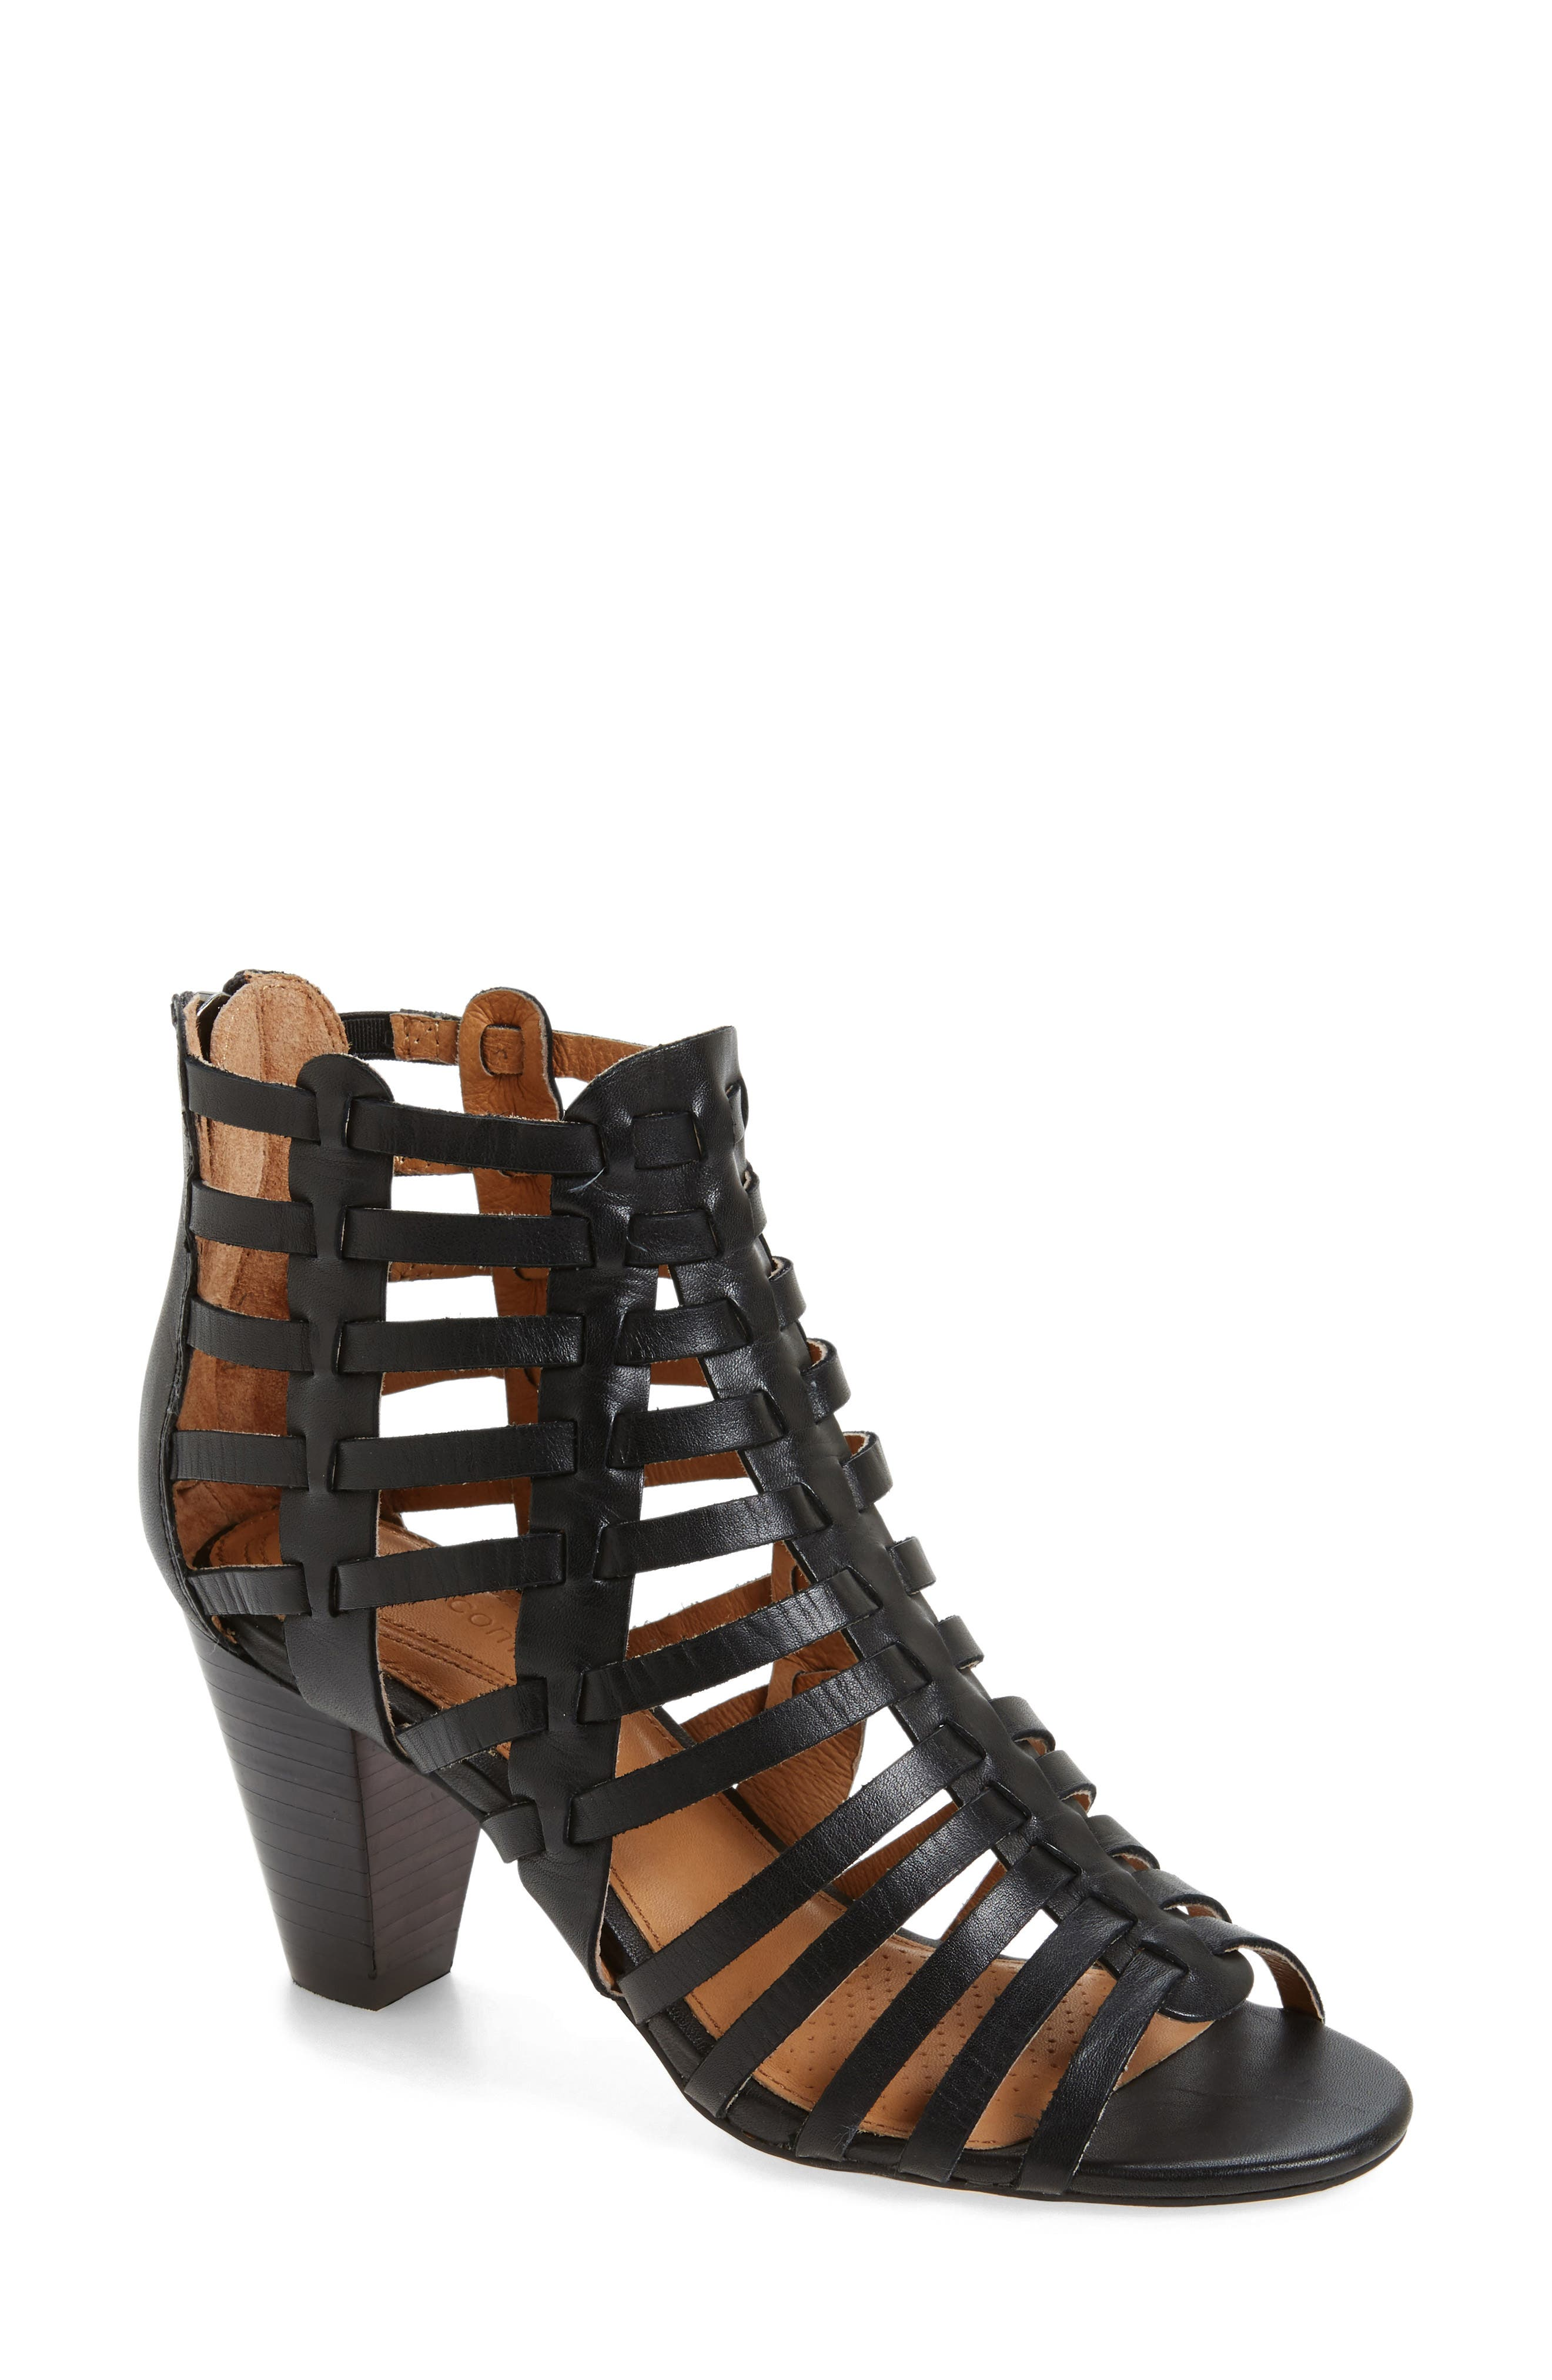 Cour Cage Sandal,                         Main,                         color, 001